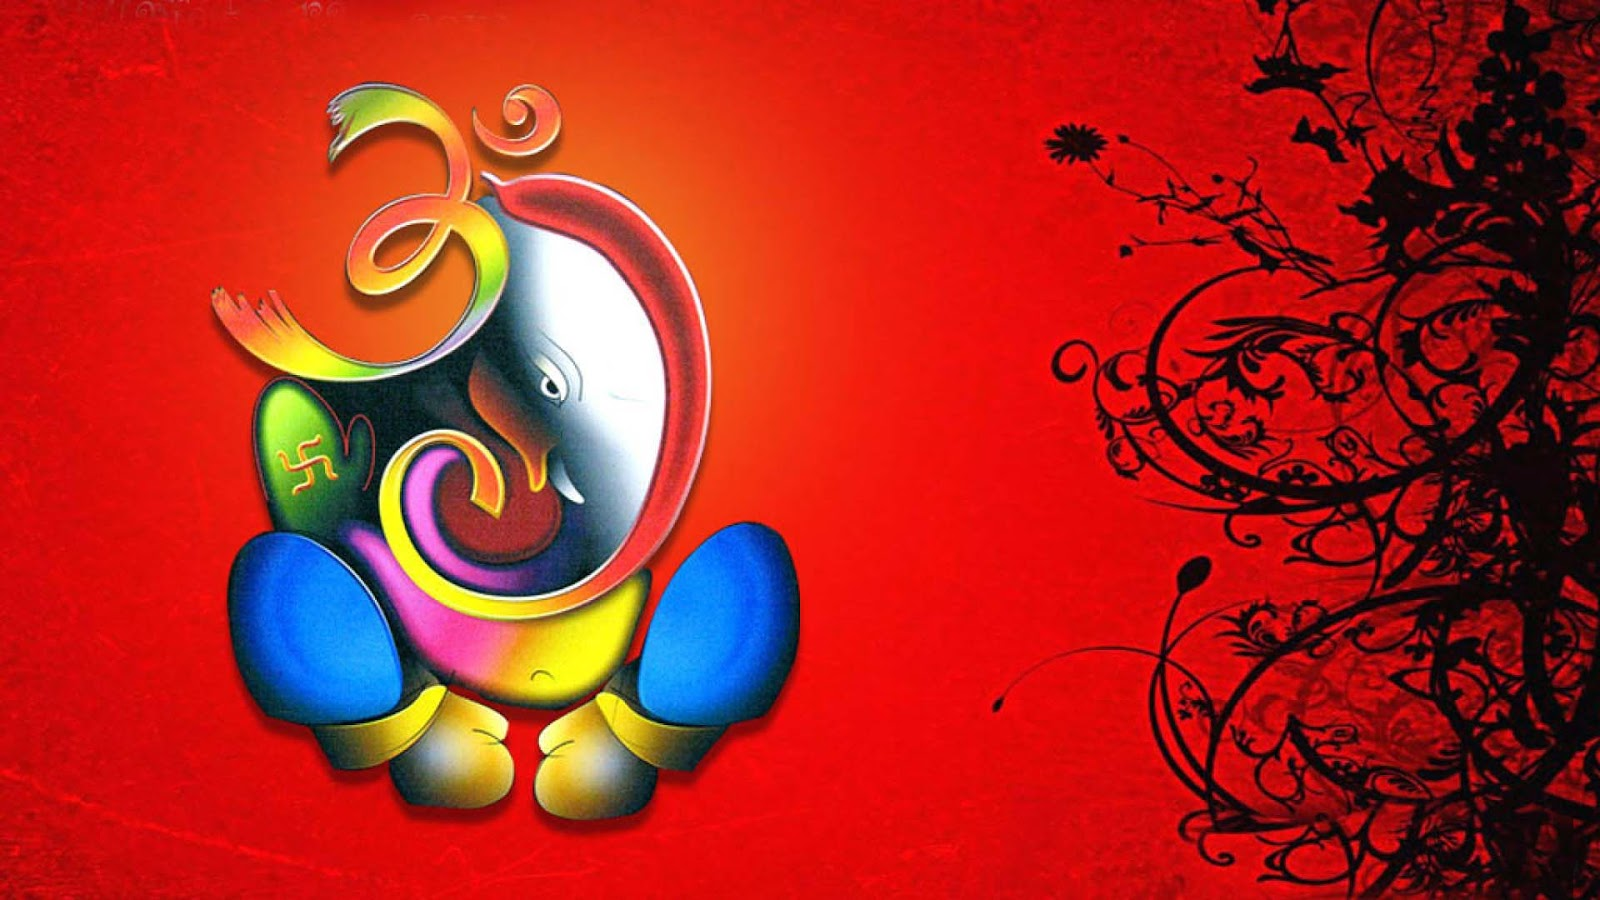 Lord Ganesha HD Wallpapers Free Download